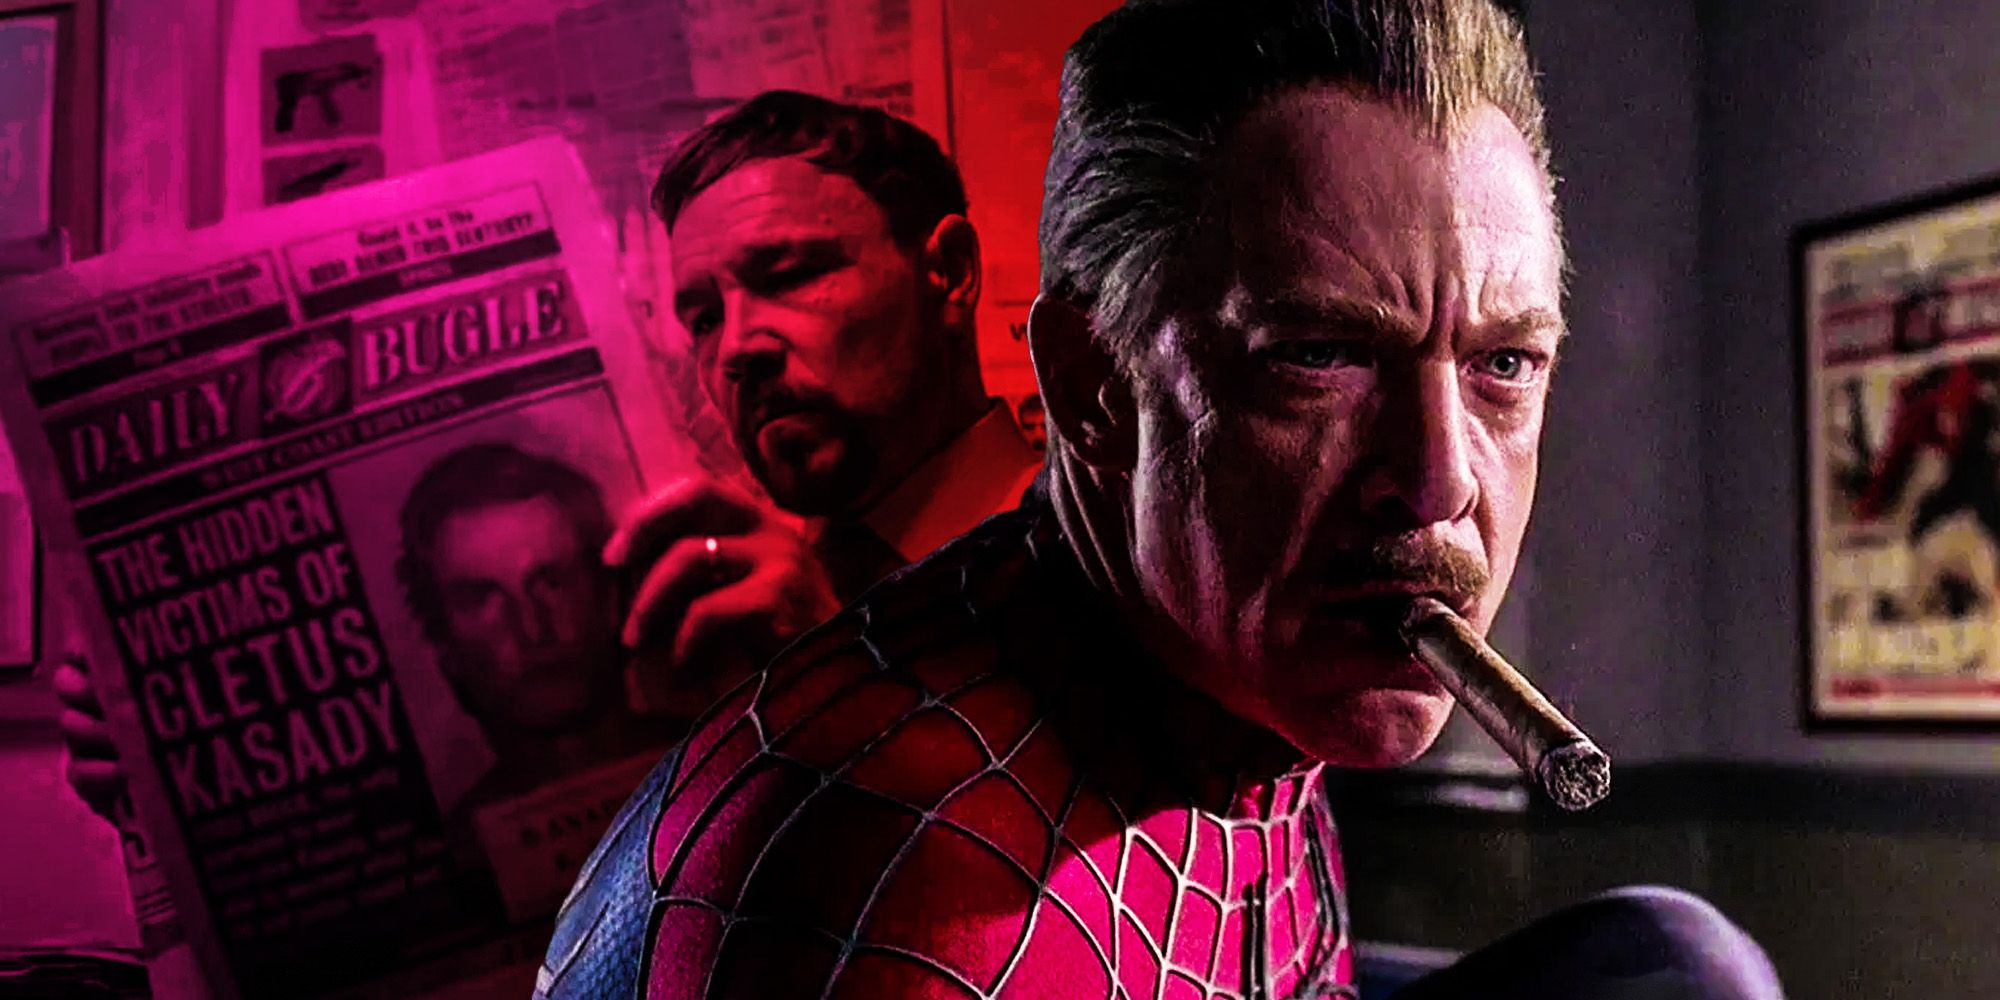 Venom 2 Trailer References Raimi's Spider-Man Movies (Are They Connected?)